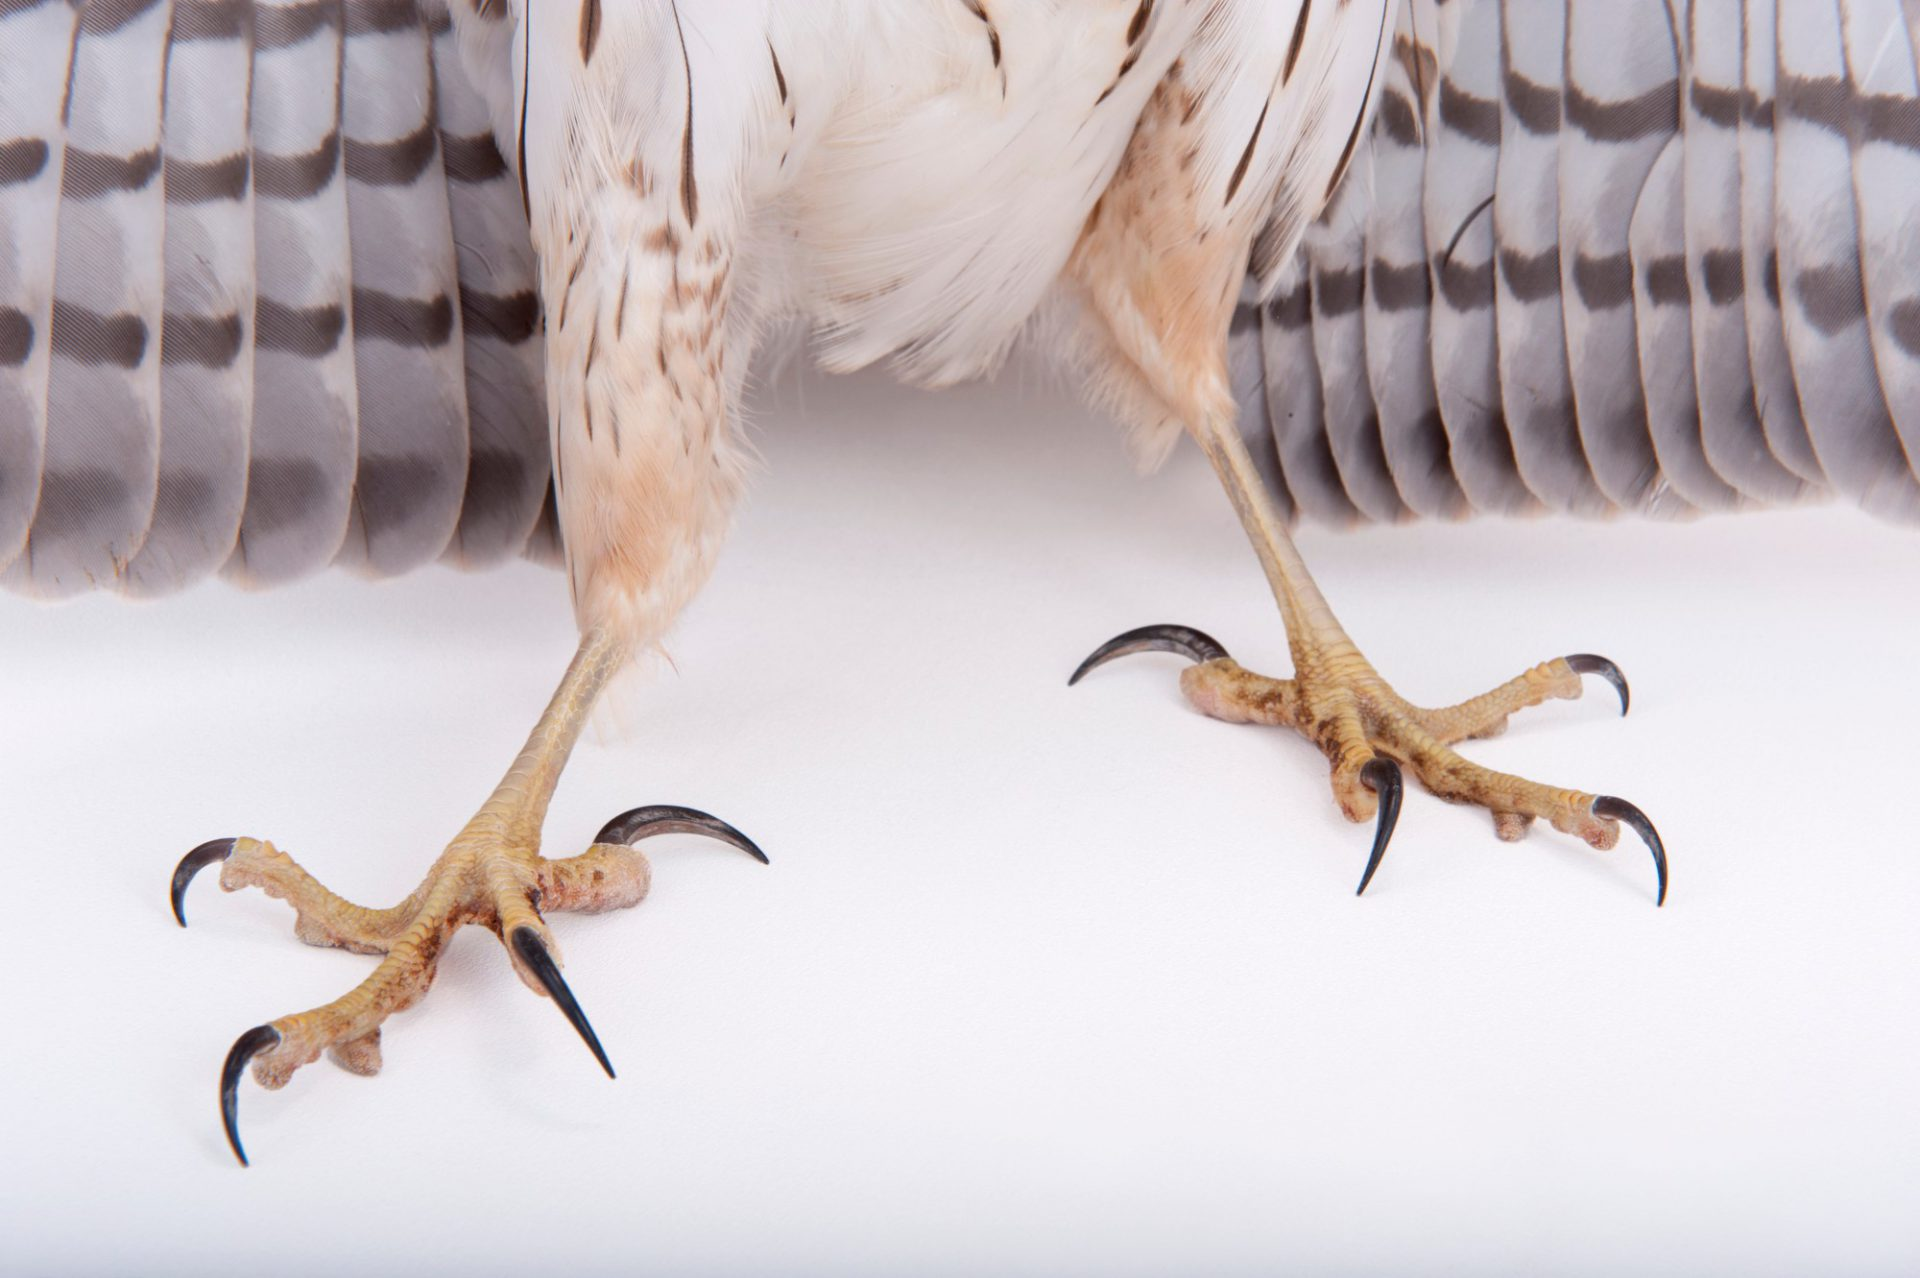 Photo: A Cooper's hawk (Accipiter cooperii) at Raptor Recovery Nebraska.